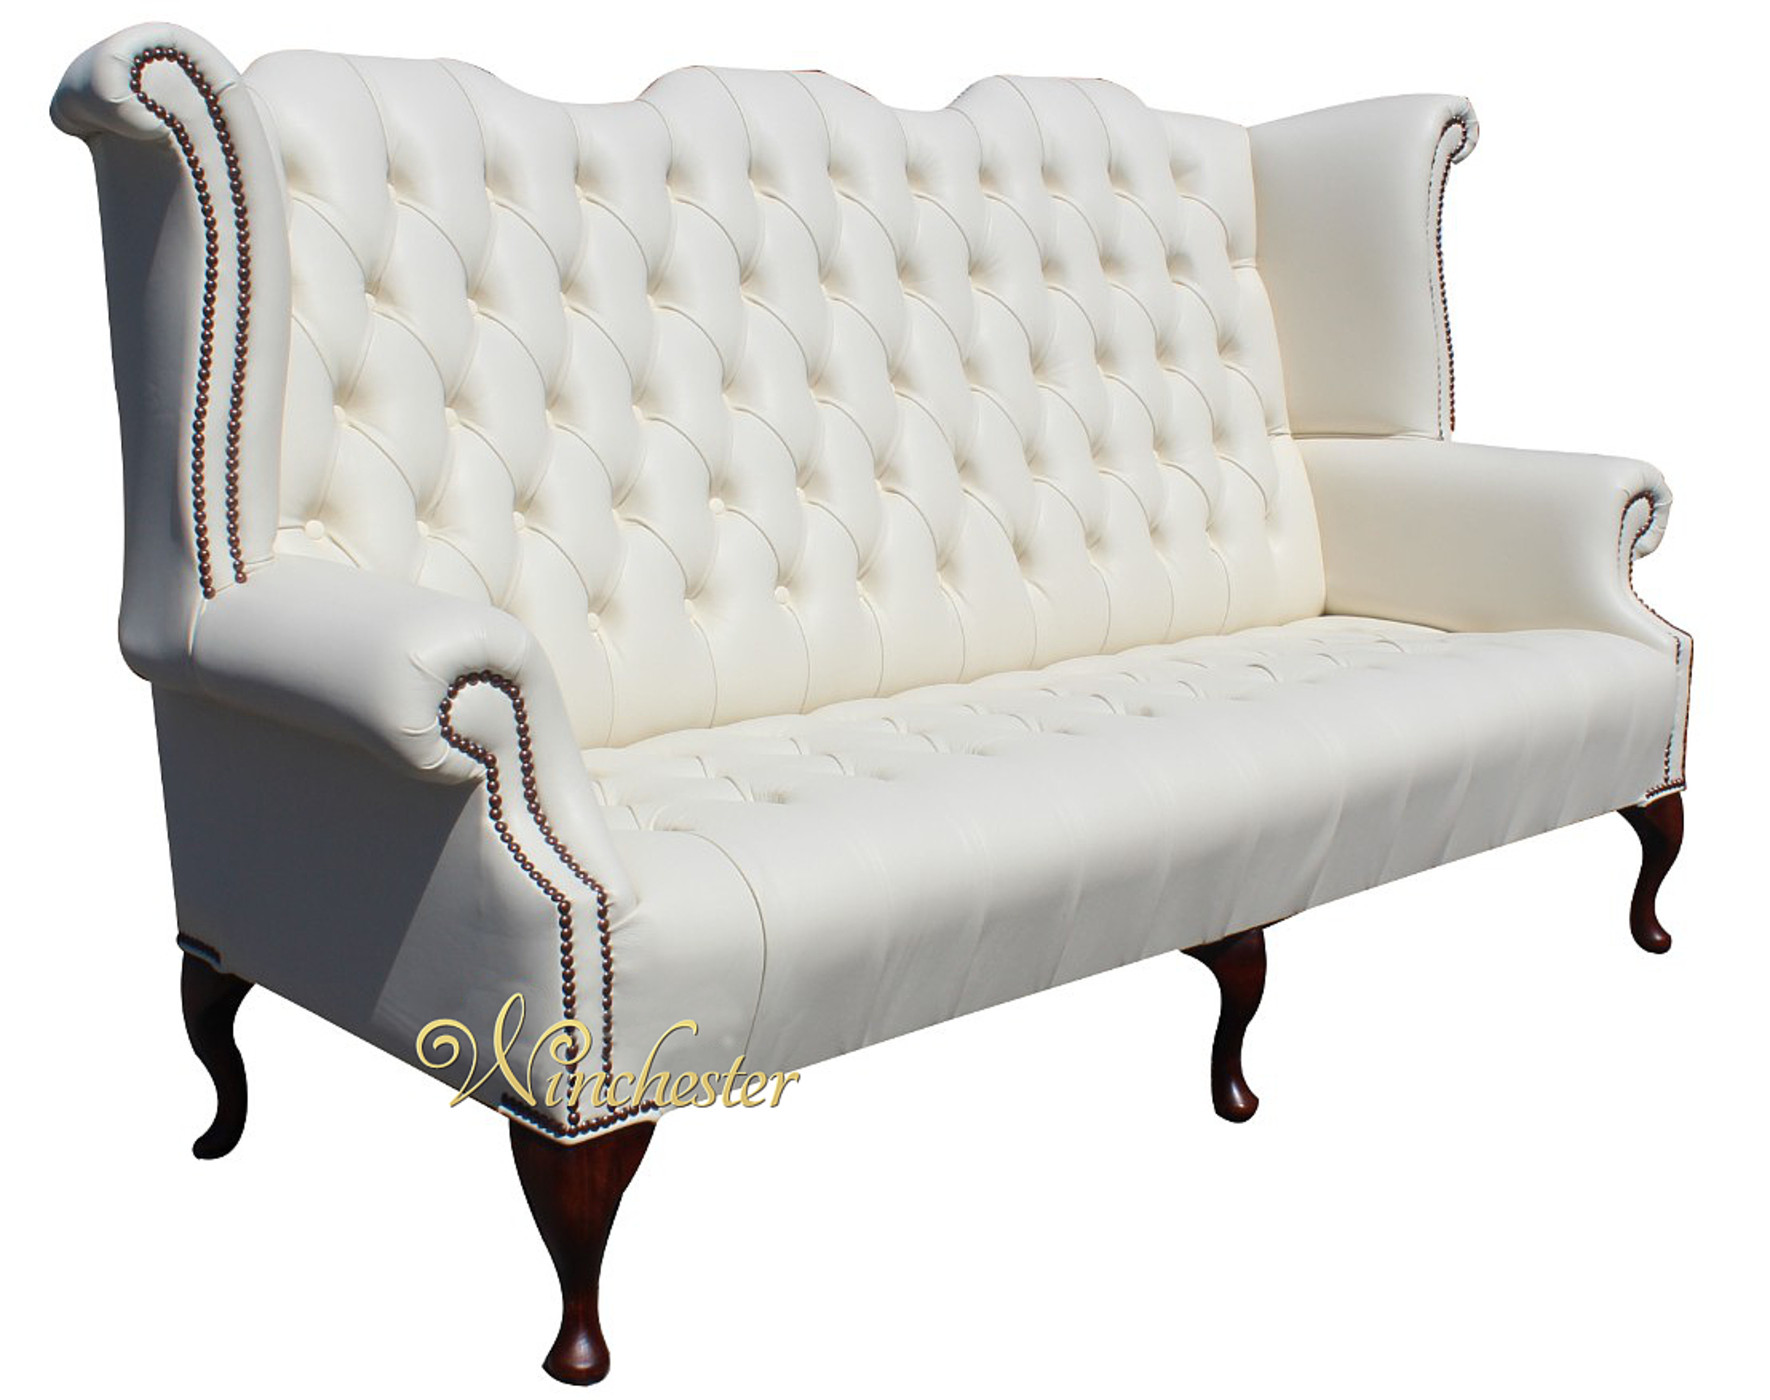 queen anne leather sofa chesterfield oxblood leather sofa antique 2 seater queen anne thesofa. Black Bedroom Furniture Sets. Home Design Ideas